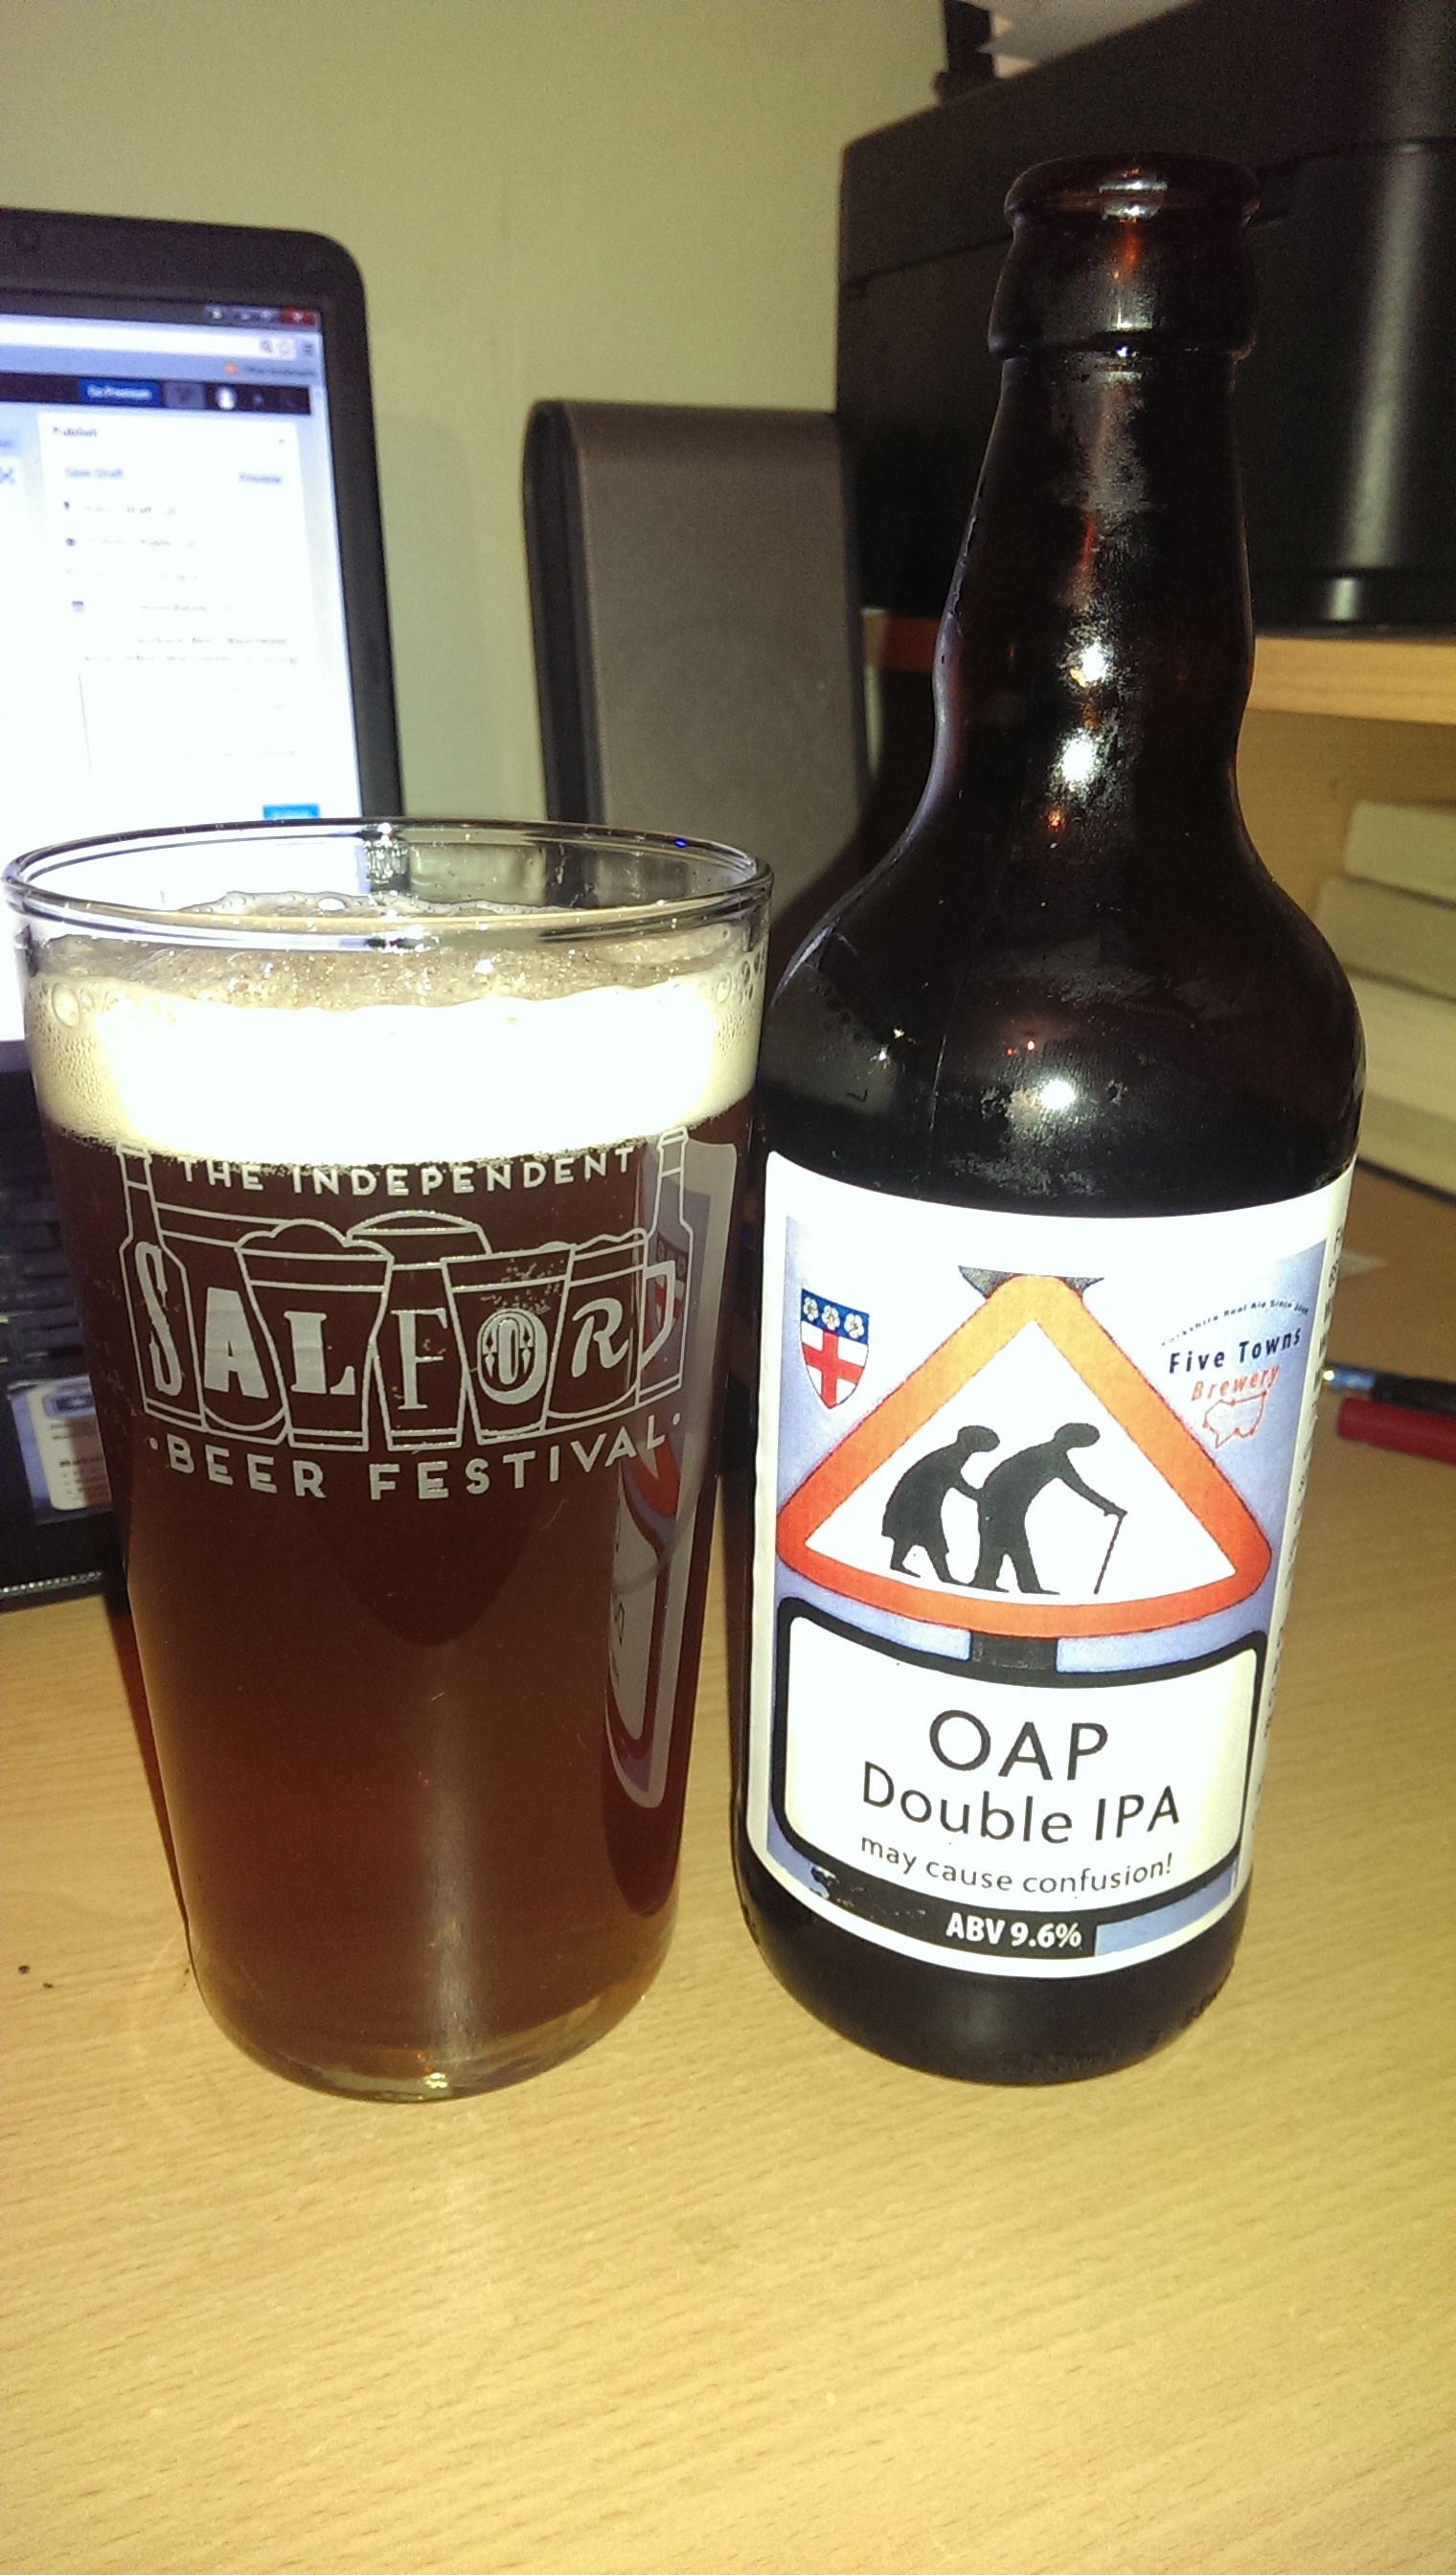 OAP – North Riding Brewpub (Scarborough) / Five Towns Brewery (Wakefield) –  9.6%abv – Double IPA – Direct from the brewers.